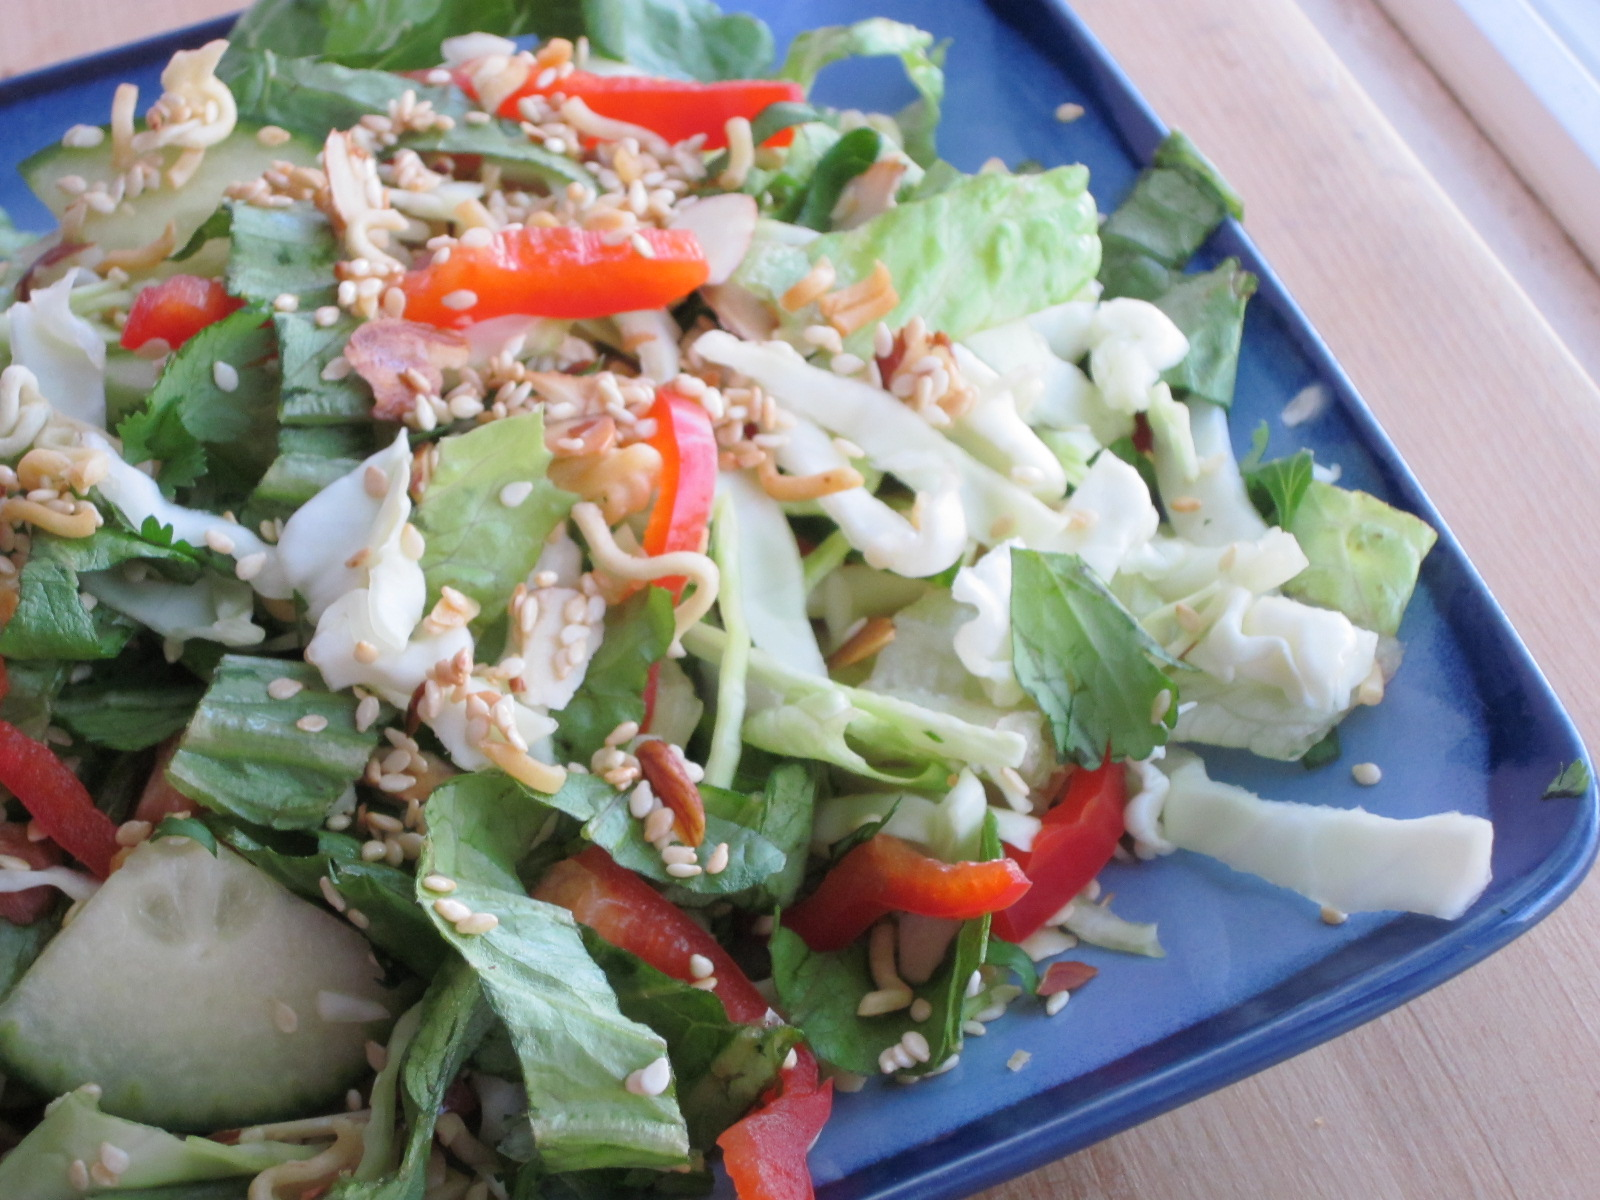 Sweet Luvin' In The Kitchen: Crunchy Asian Salad